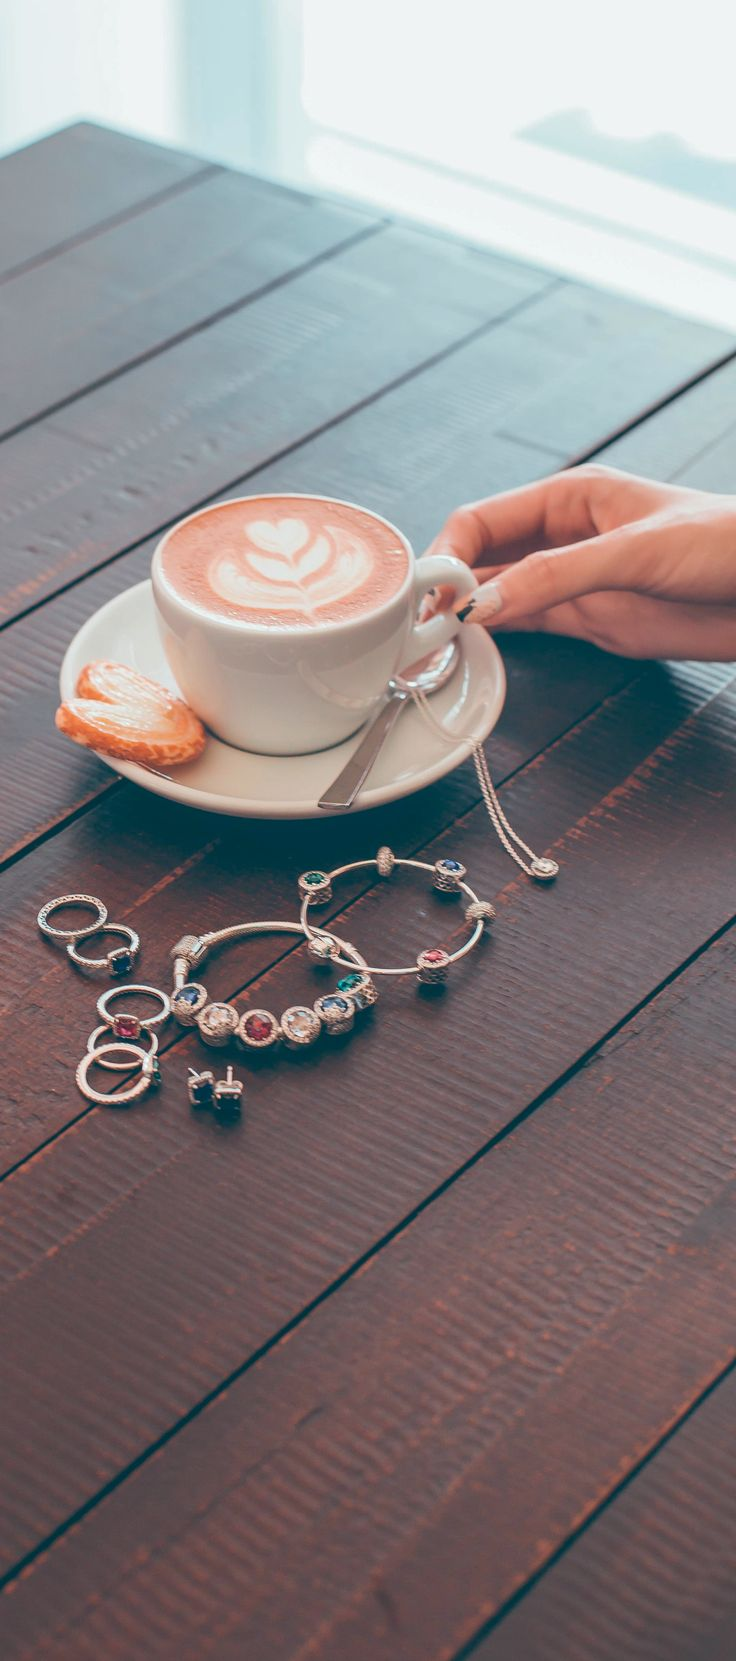 Time for coffee and vivid PANDORA jewellery in sterling silver and multicoloured crystals, perfect for adding some colour to the grey season. Image by Christabel Chua.